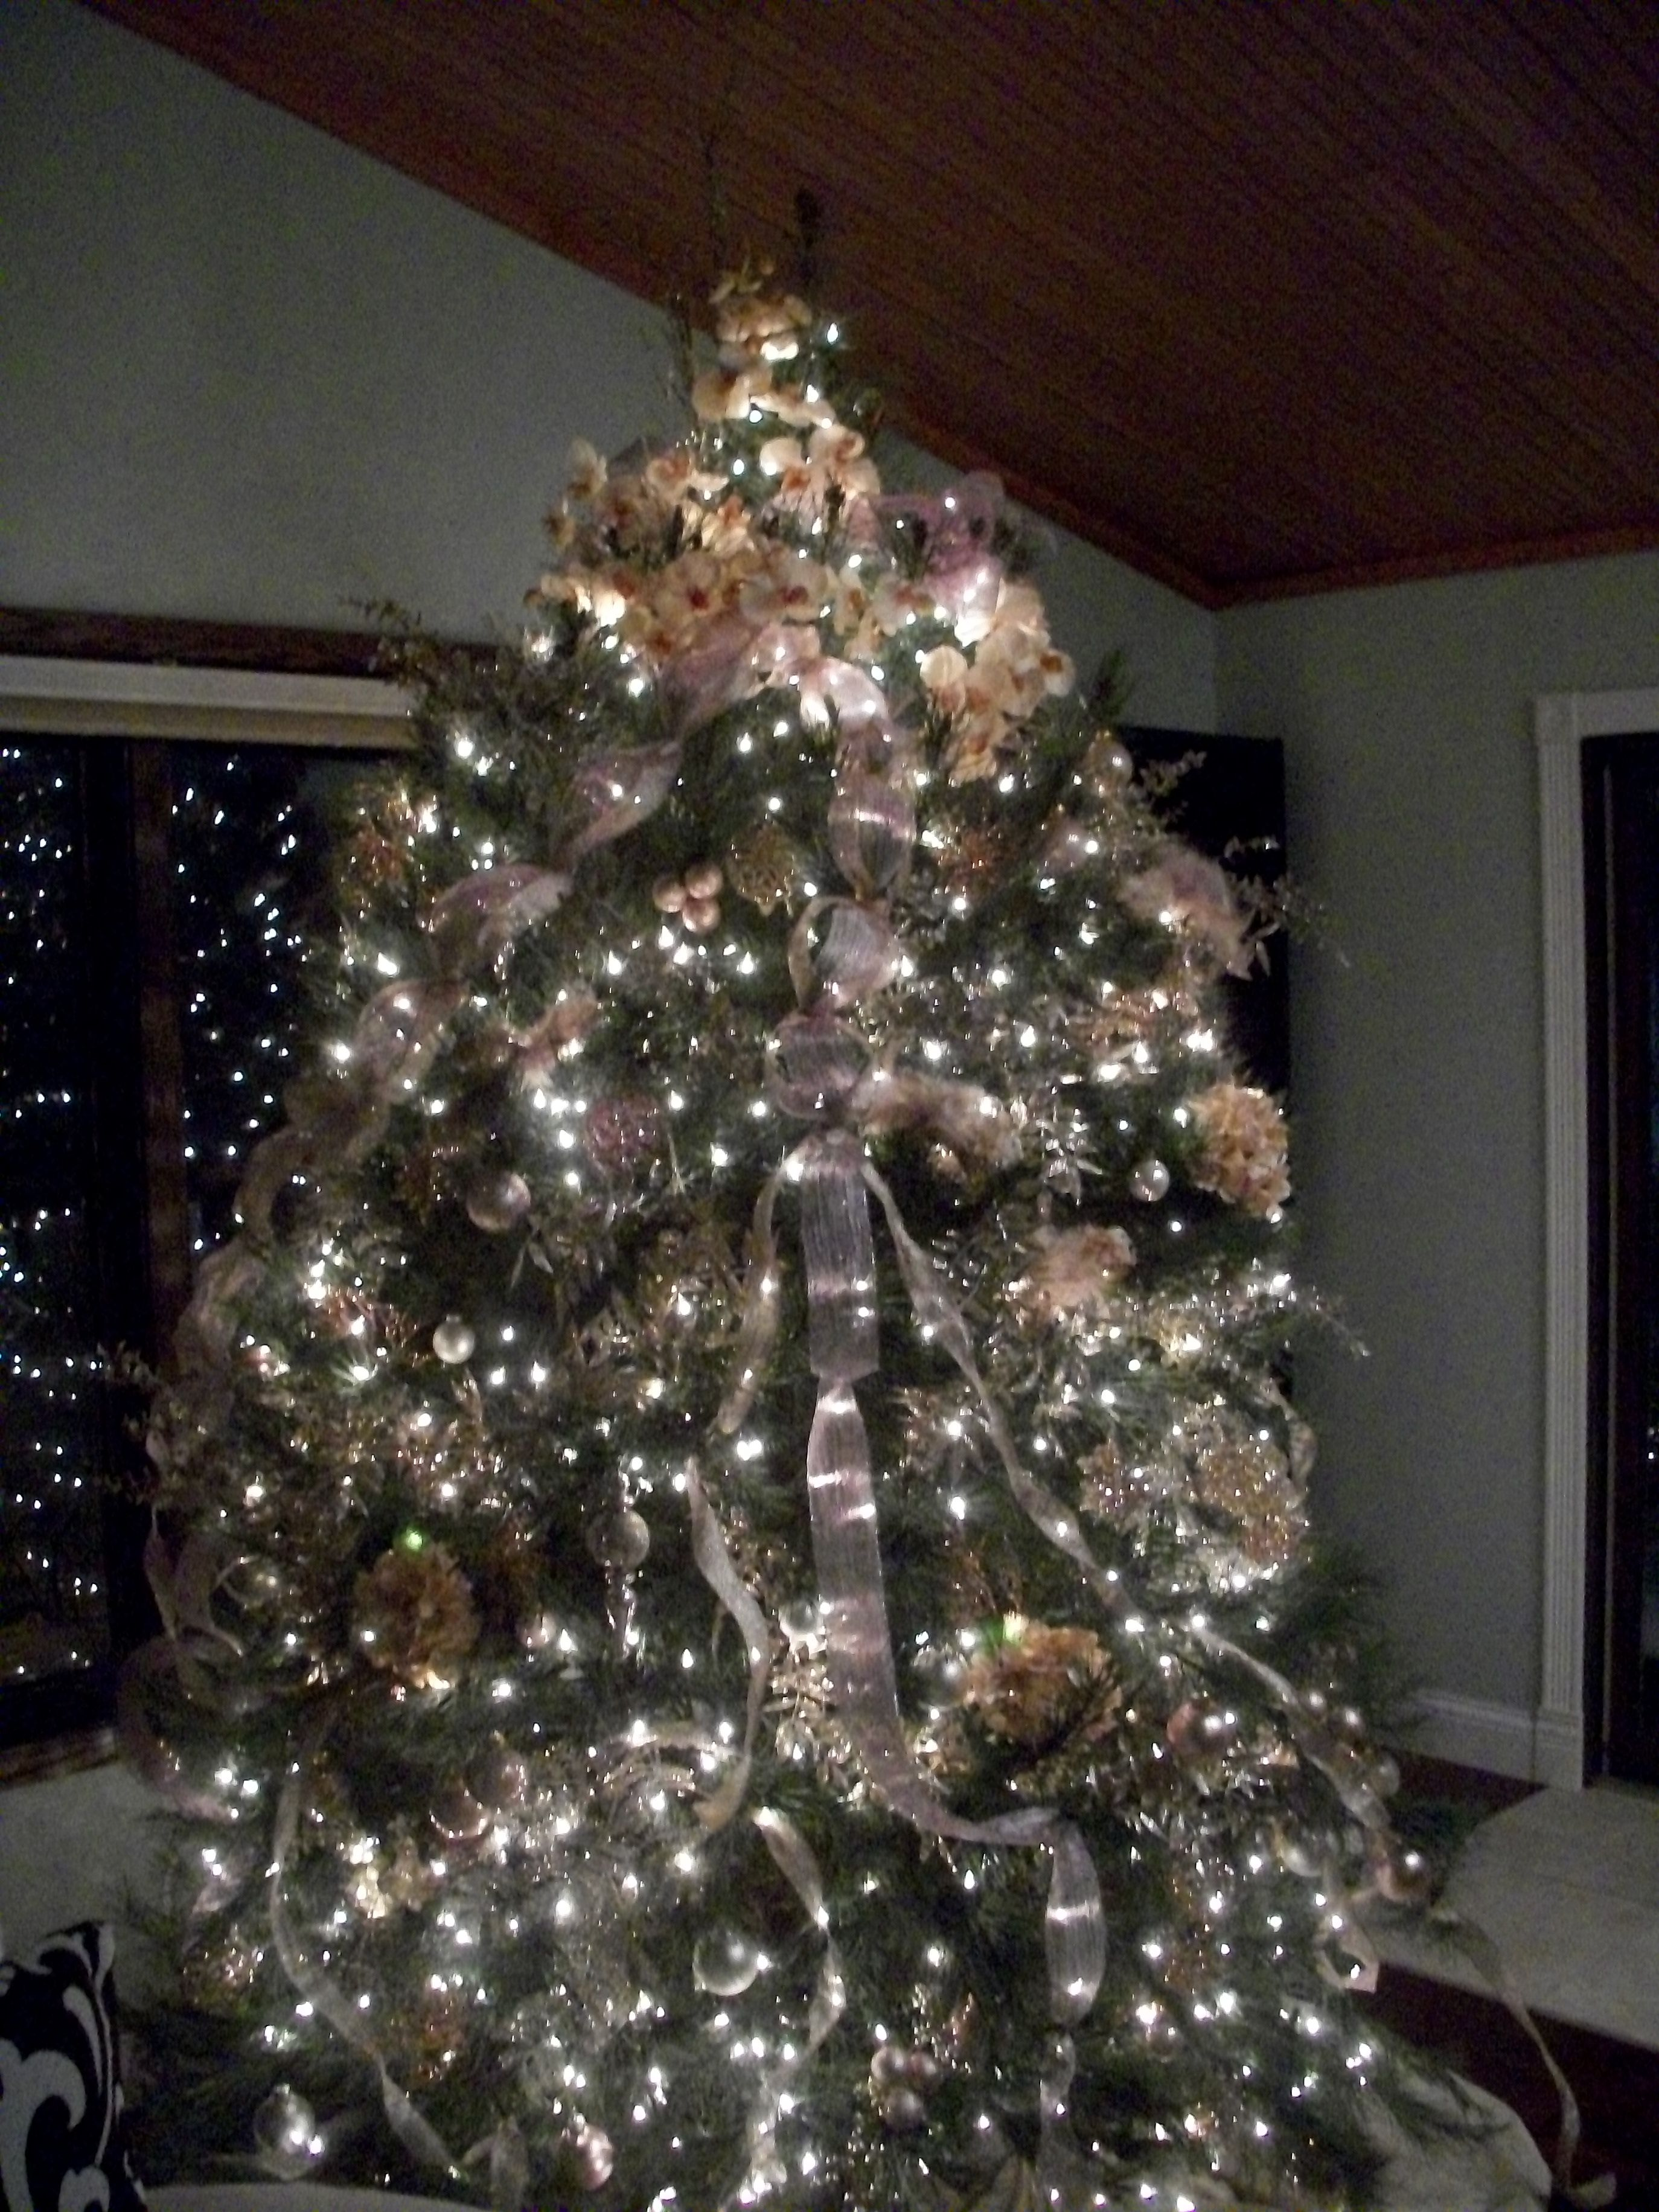 When the weather gets cold...warm the house with the tree.  Looking forward to tree decorating.